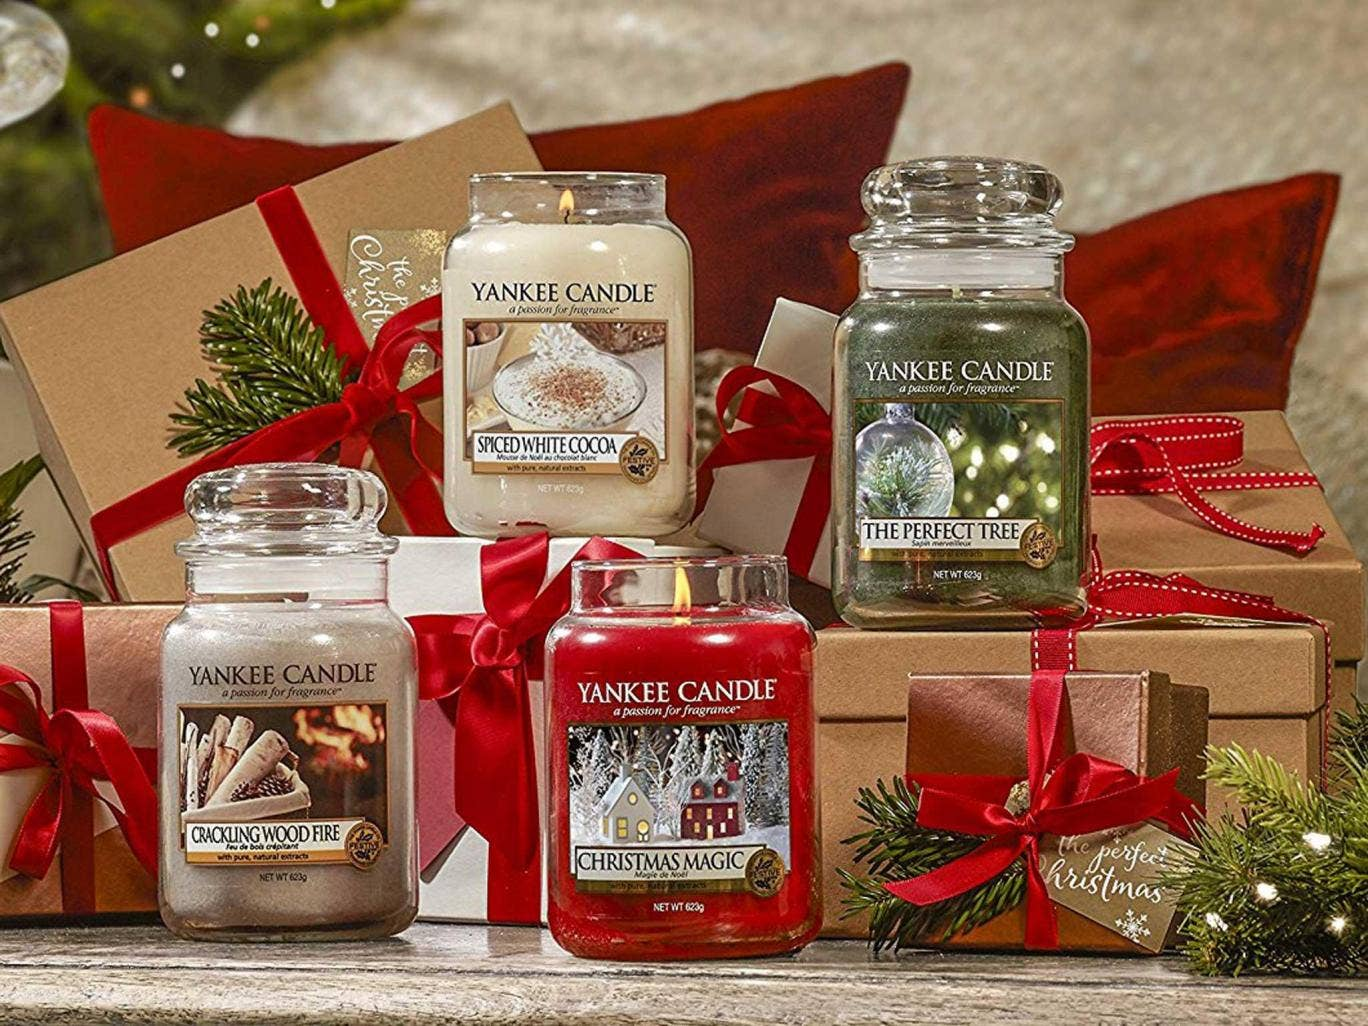 10 best Christmas scented candles | The Independent